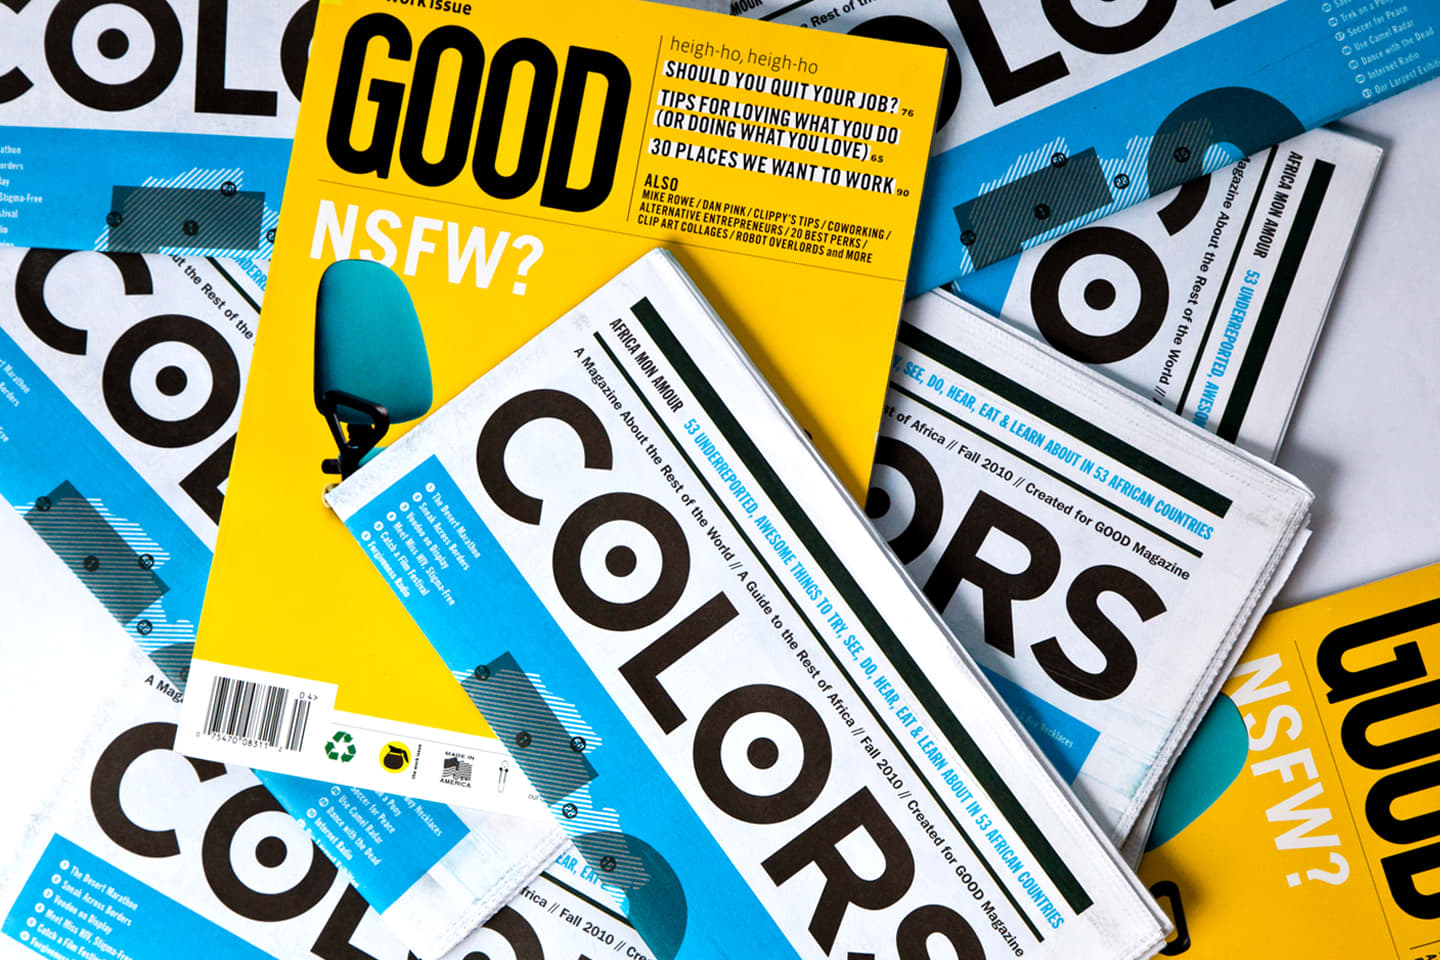 Good Magazine & Colors: A Guide to Africa